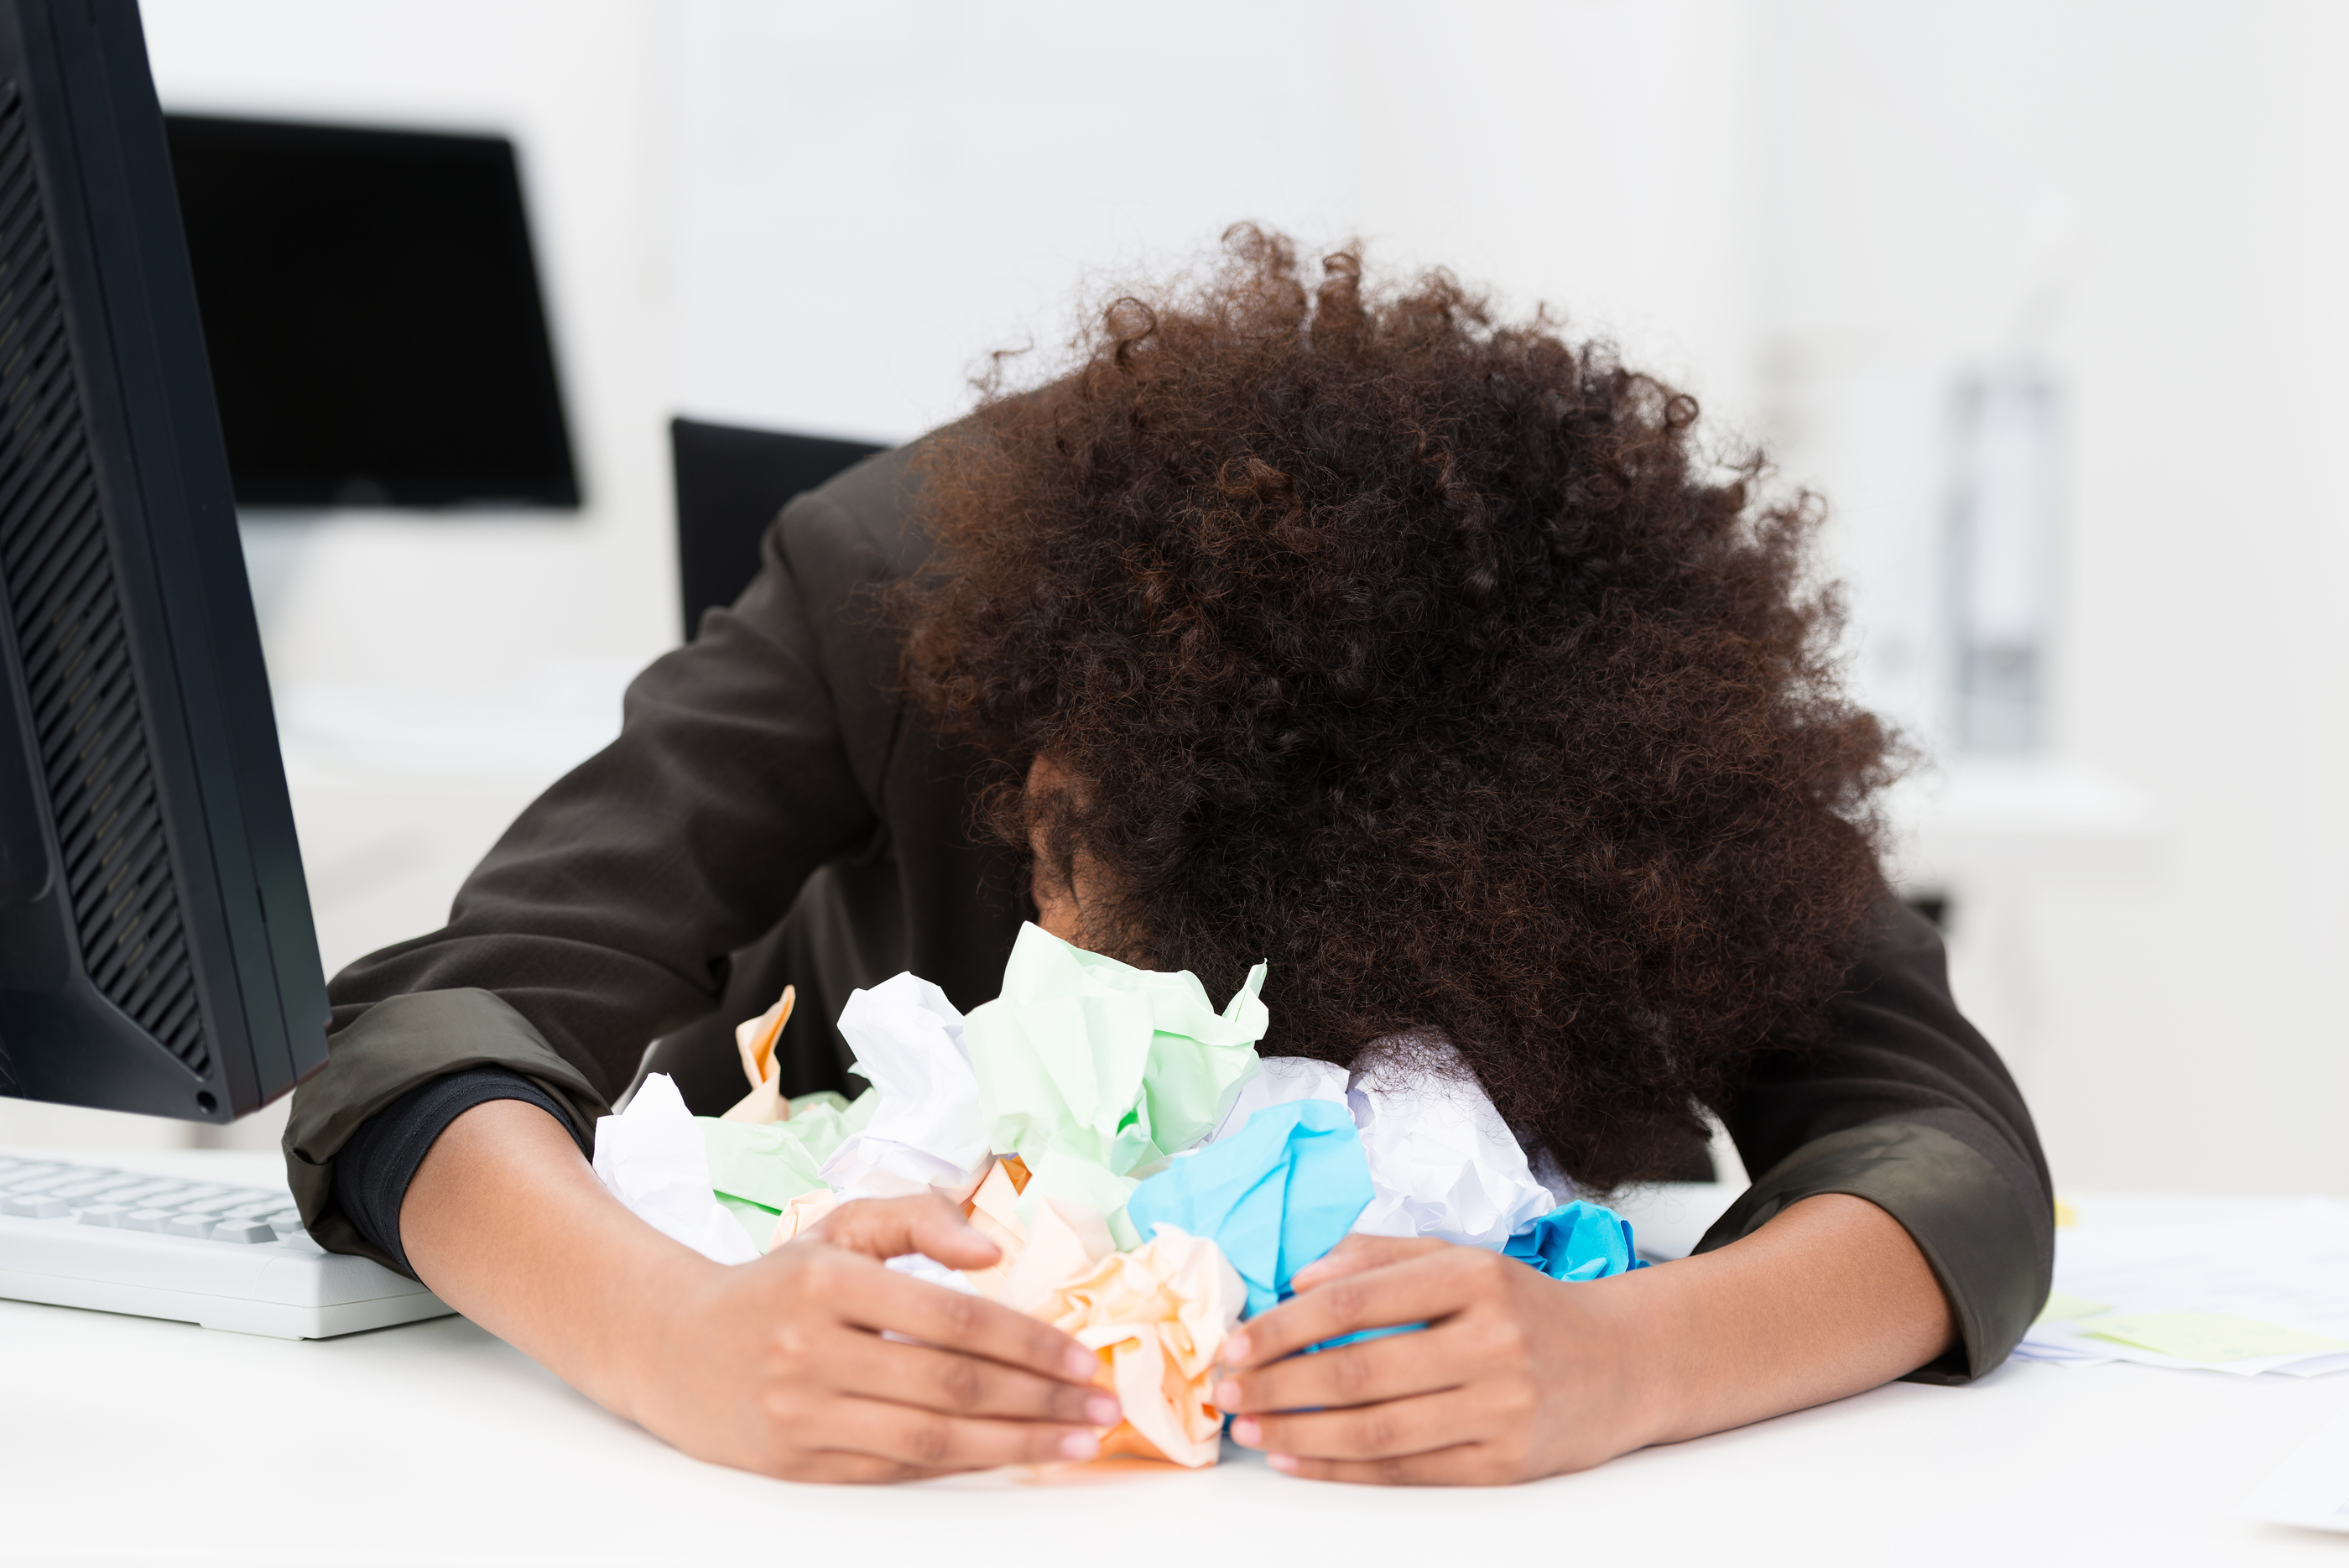 Woman, with her head down and arms in front of her cradling a pile of crumpled up paper.